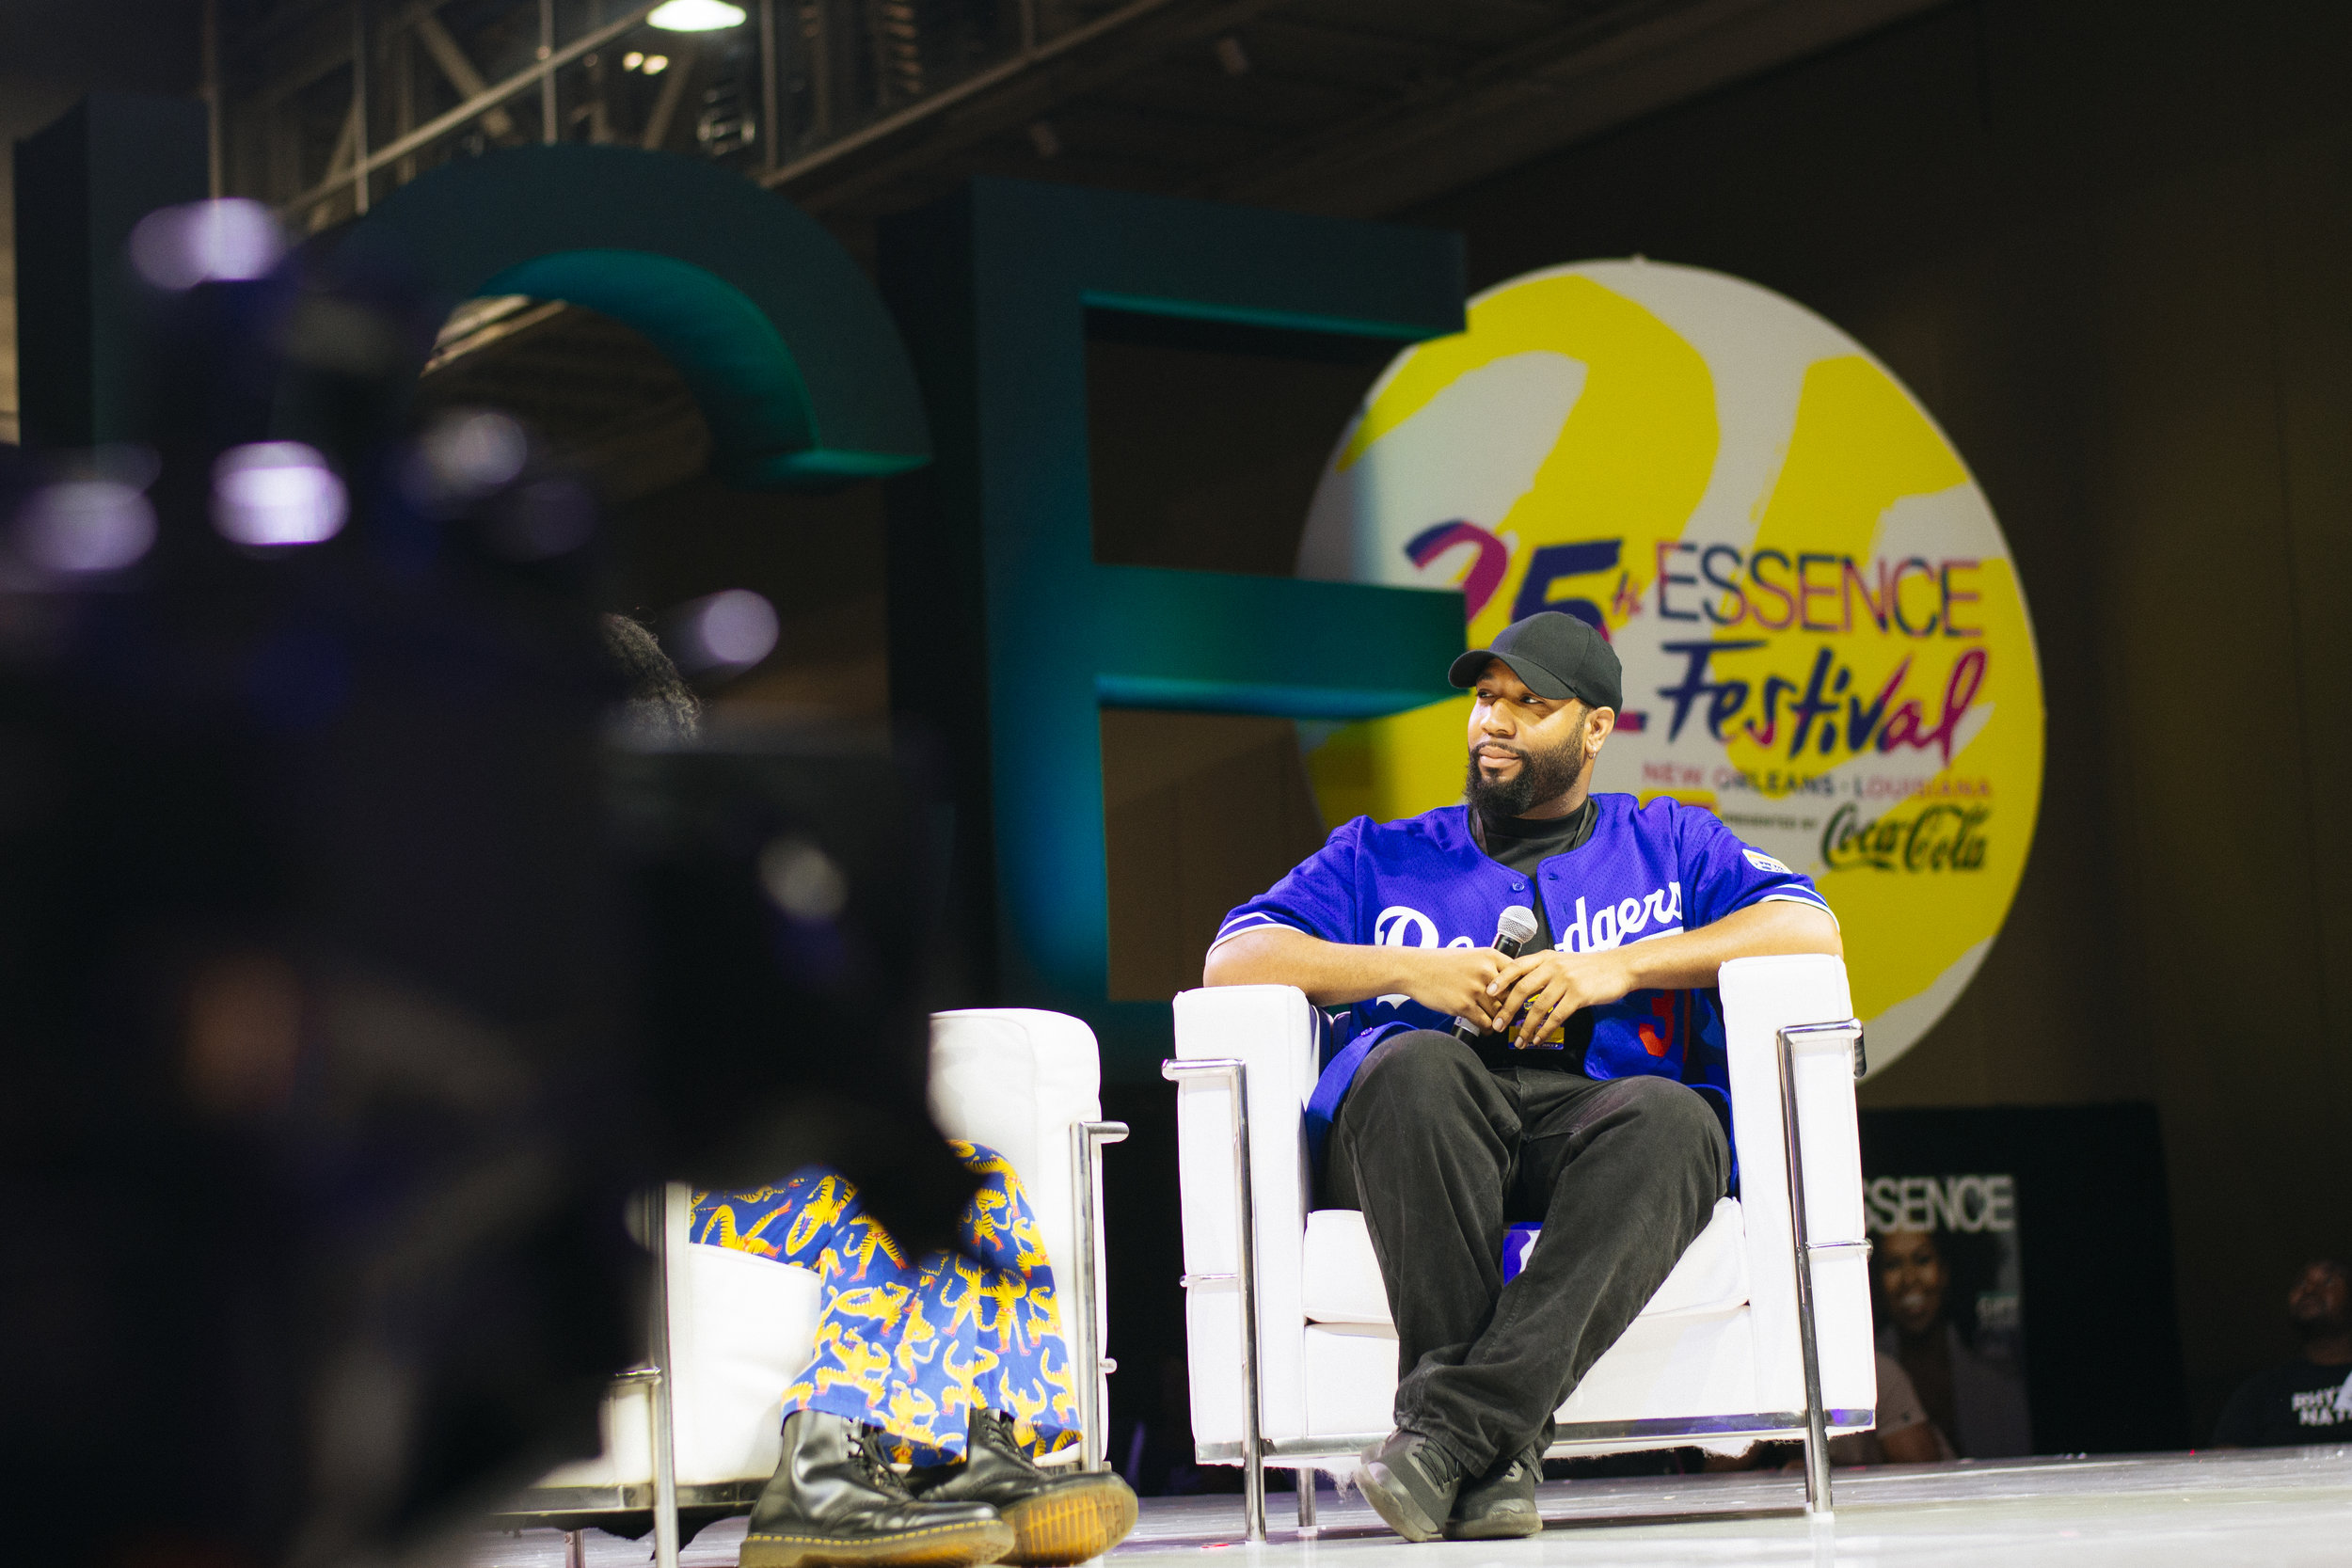 Cameron Henderson's live interview at Essence 25 in New Orleans, LA.